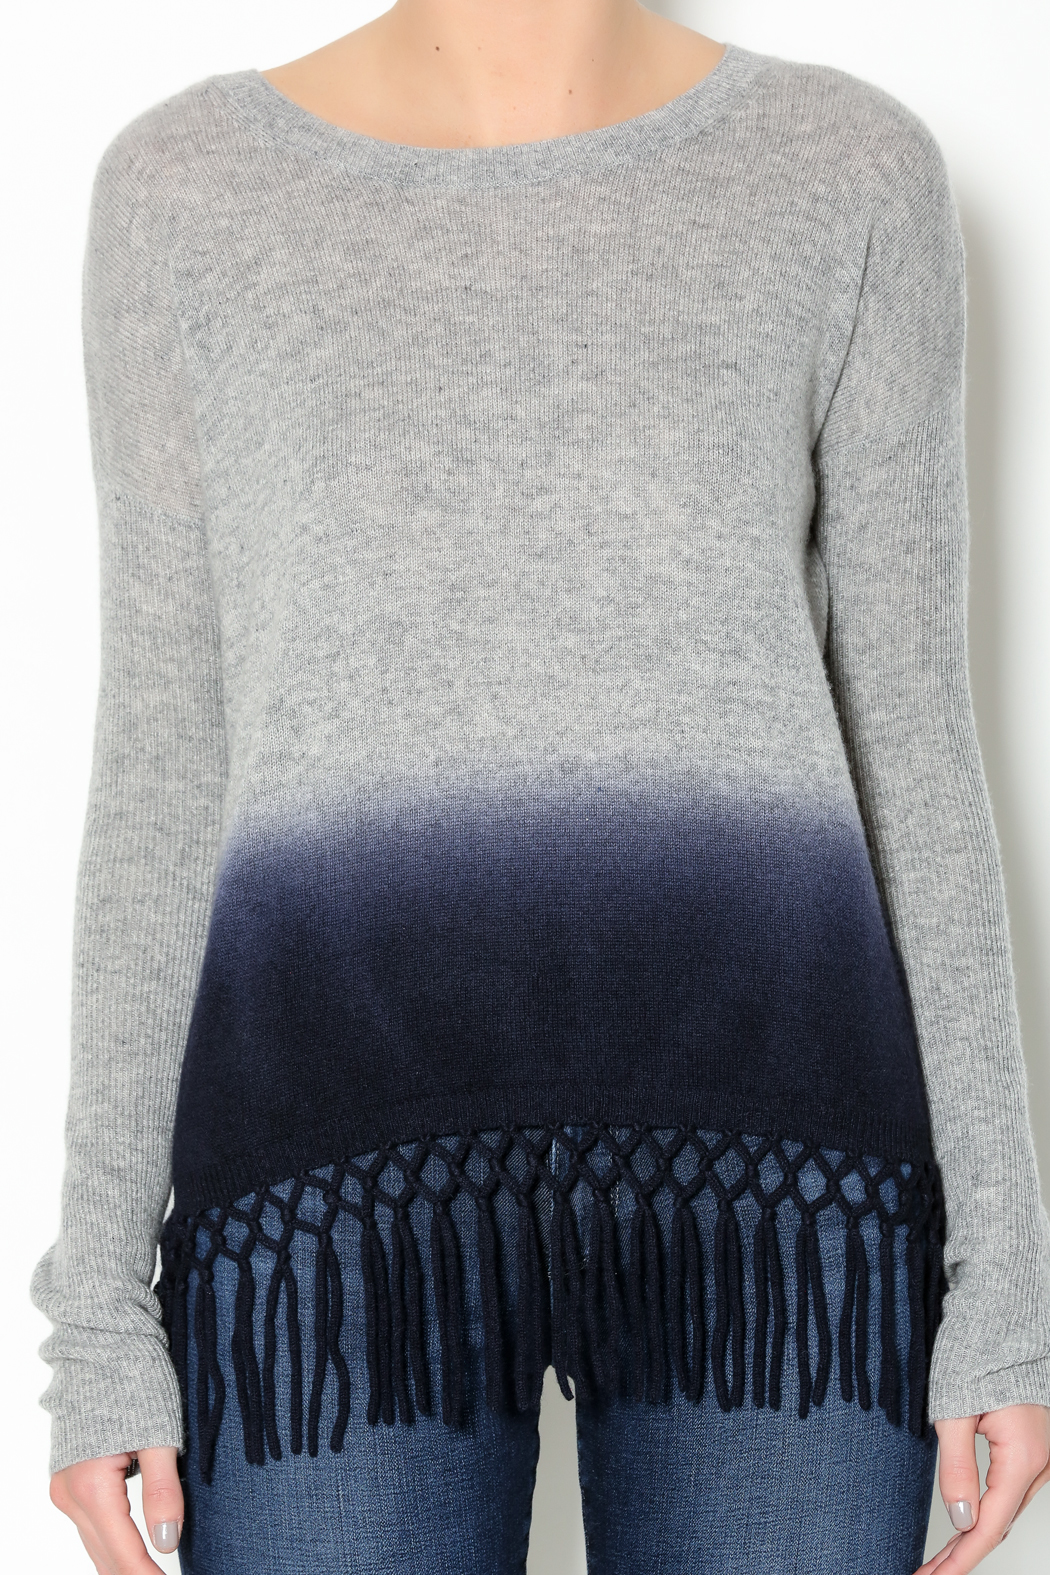 Autumn Cashmere Dip Dye Fringe Sweater From New York City